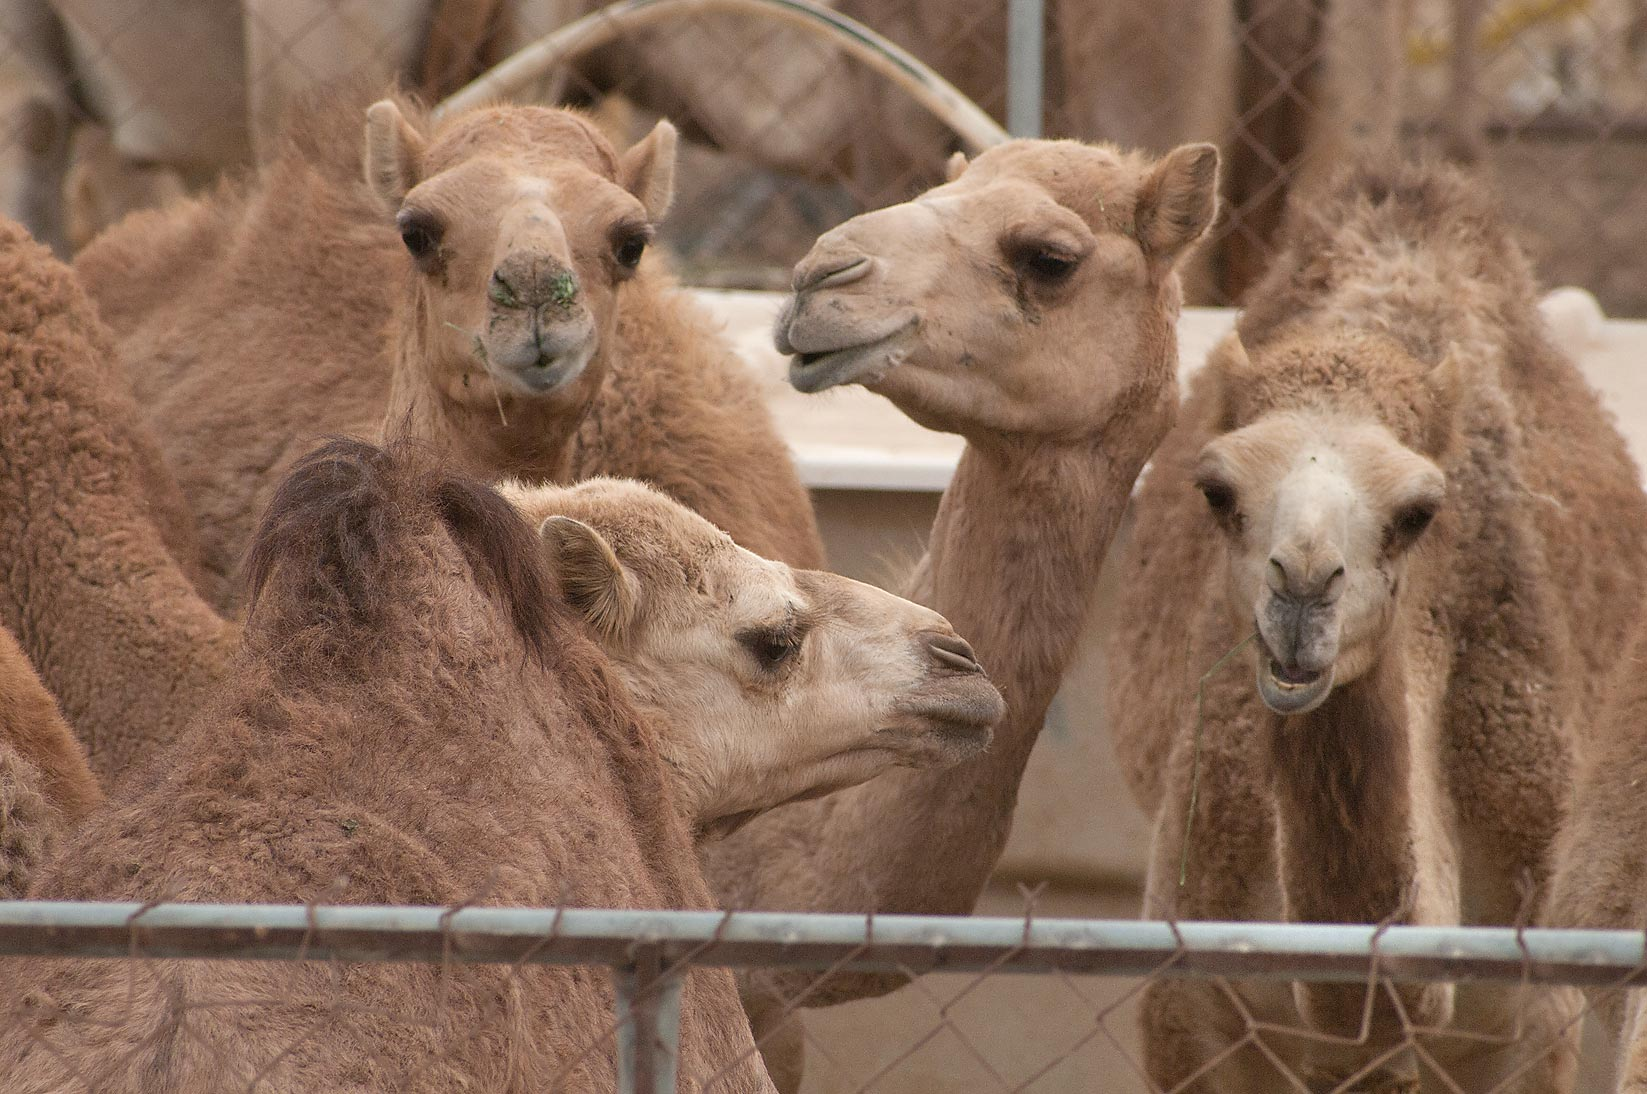 Gathering of camels in Camel Market, Wholesale Markets area. Doha, Qatar